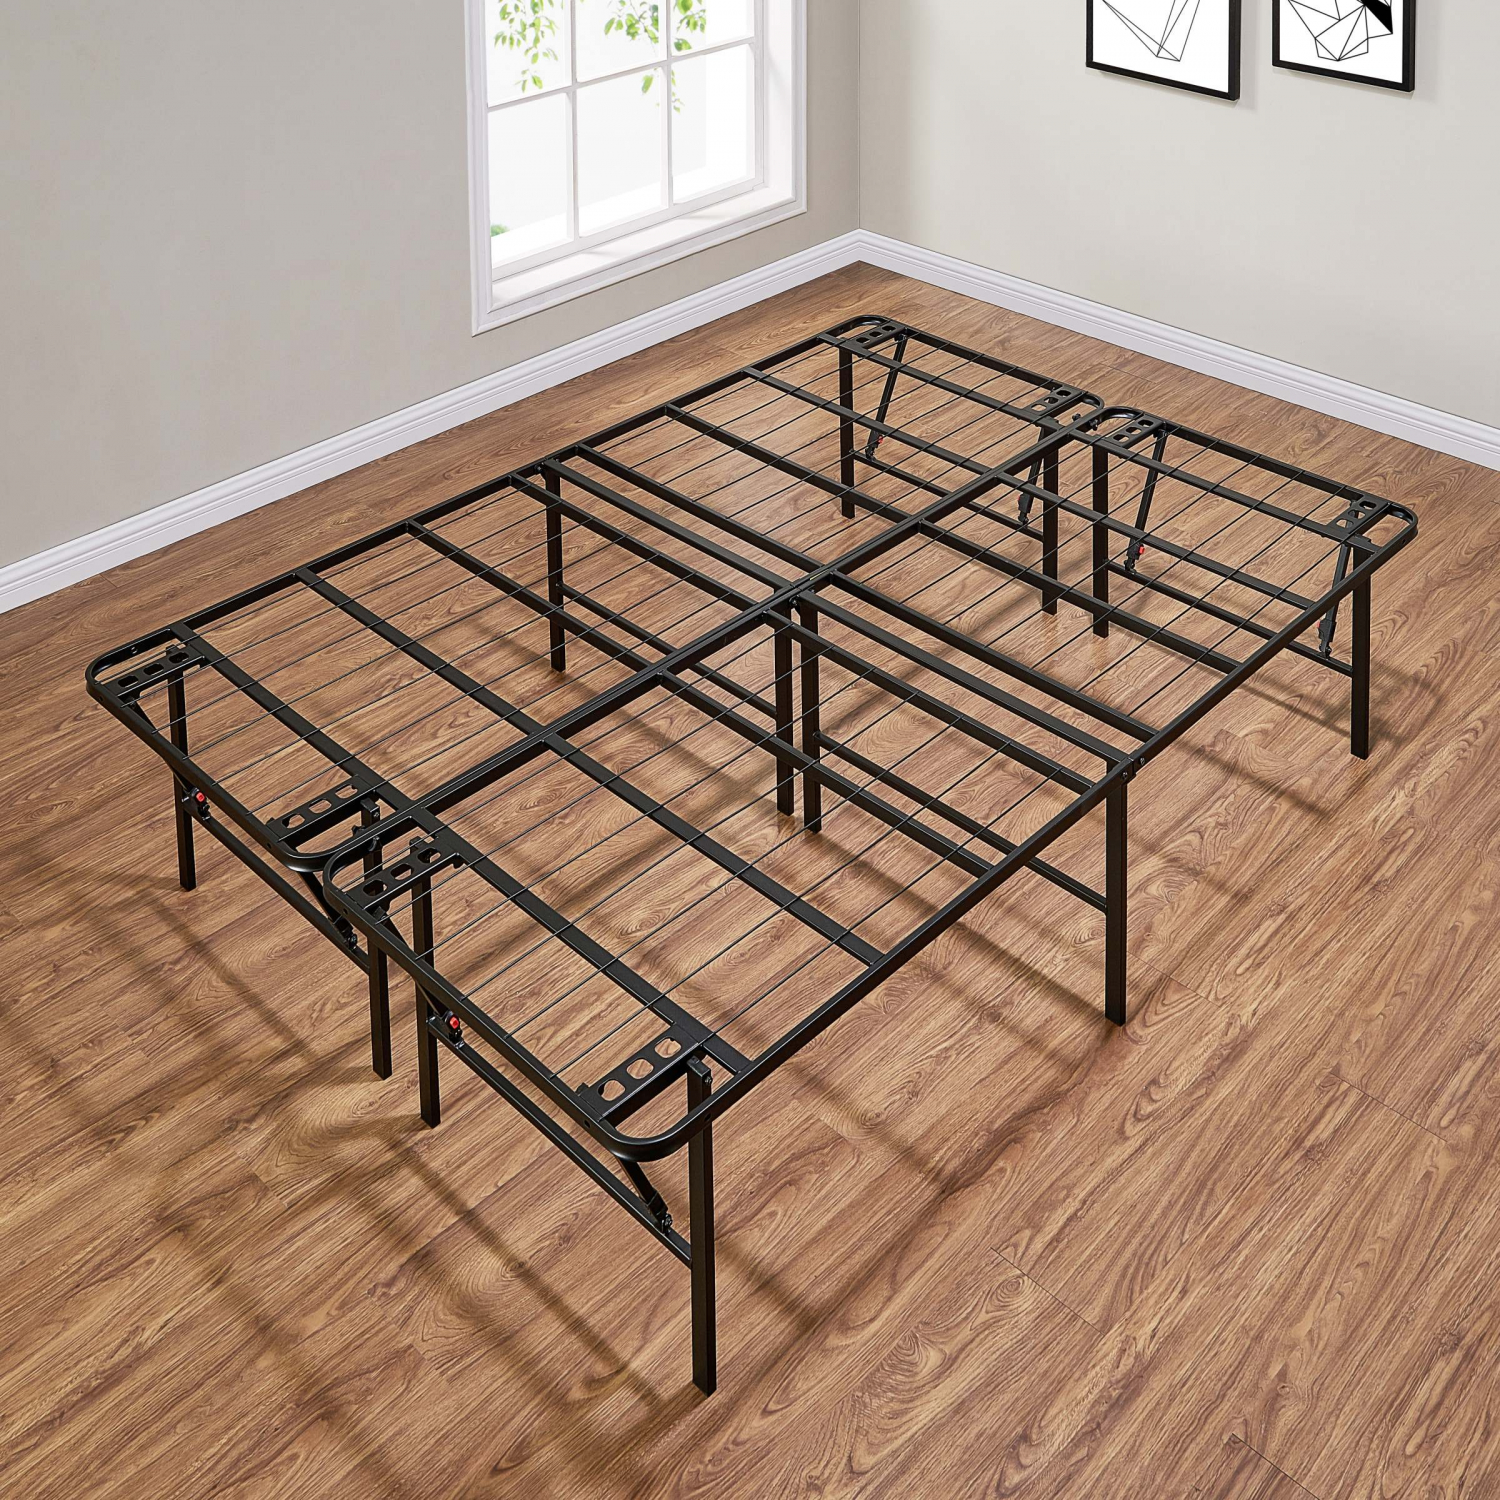 - Queen Size Bed Frame With Tall Legs For Under The Bed Storage